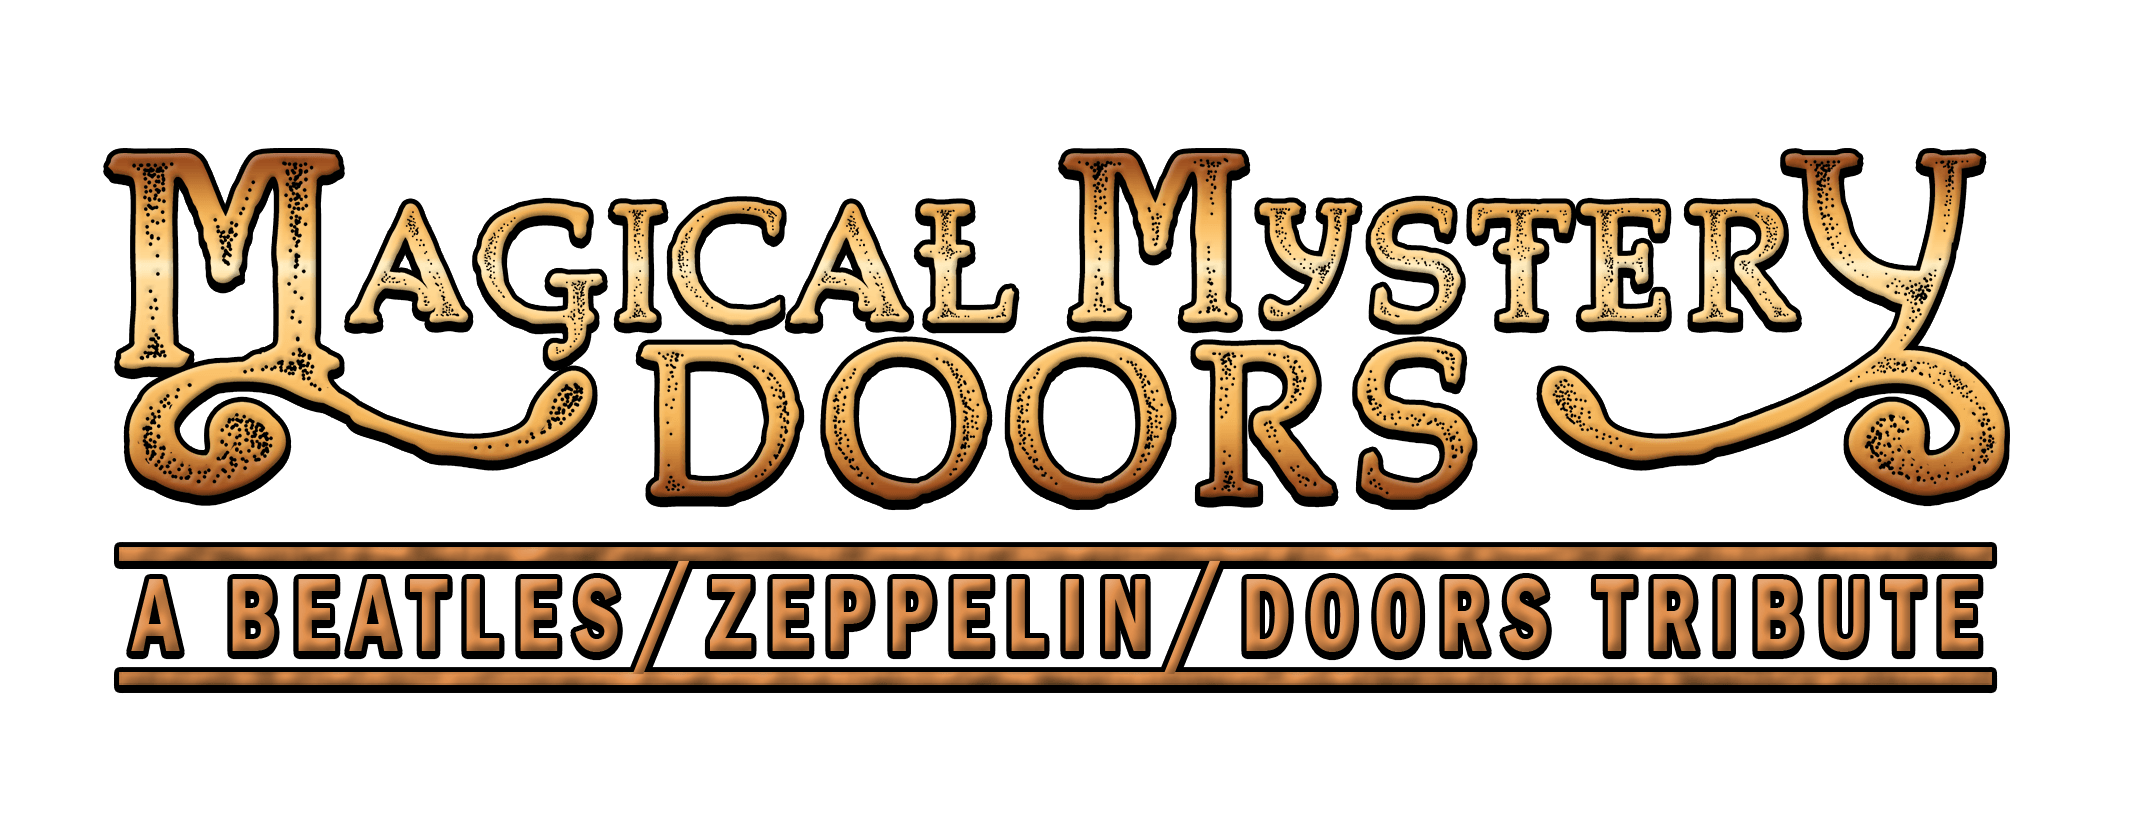 Magical Mystery Doors 1